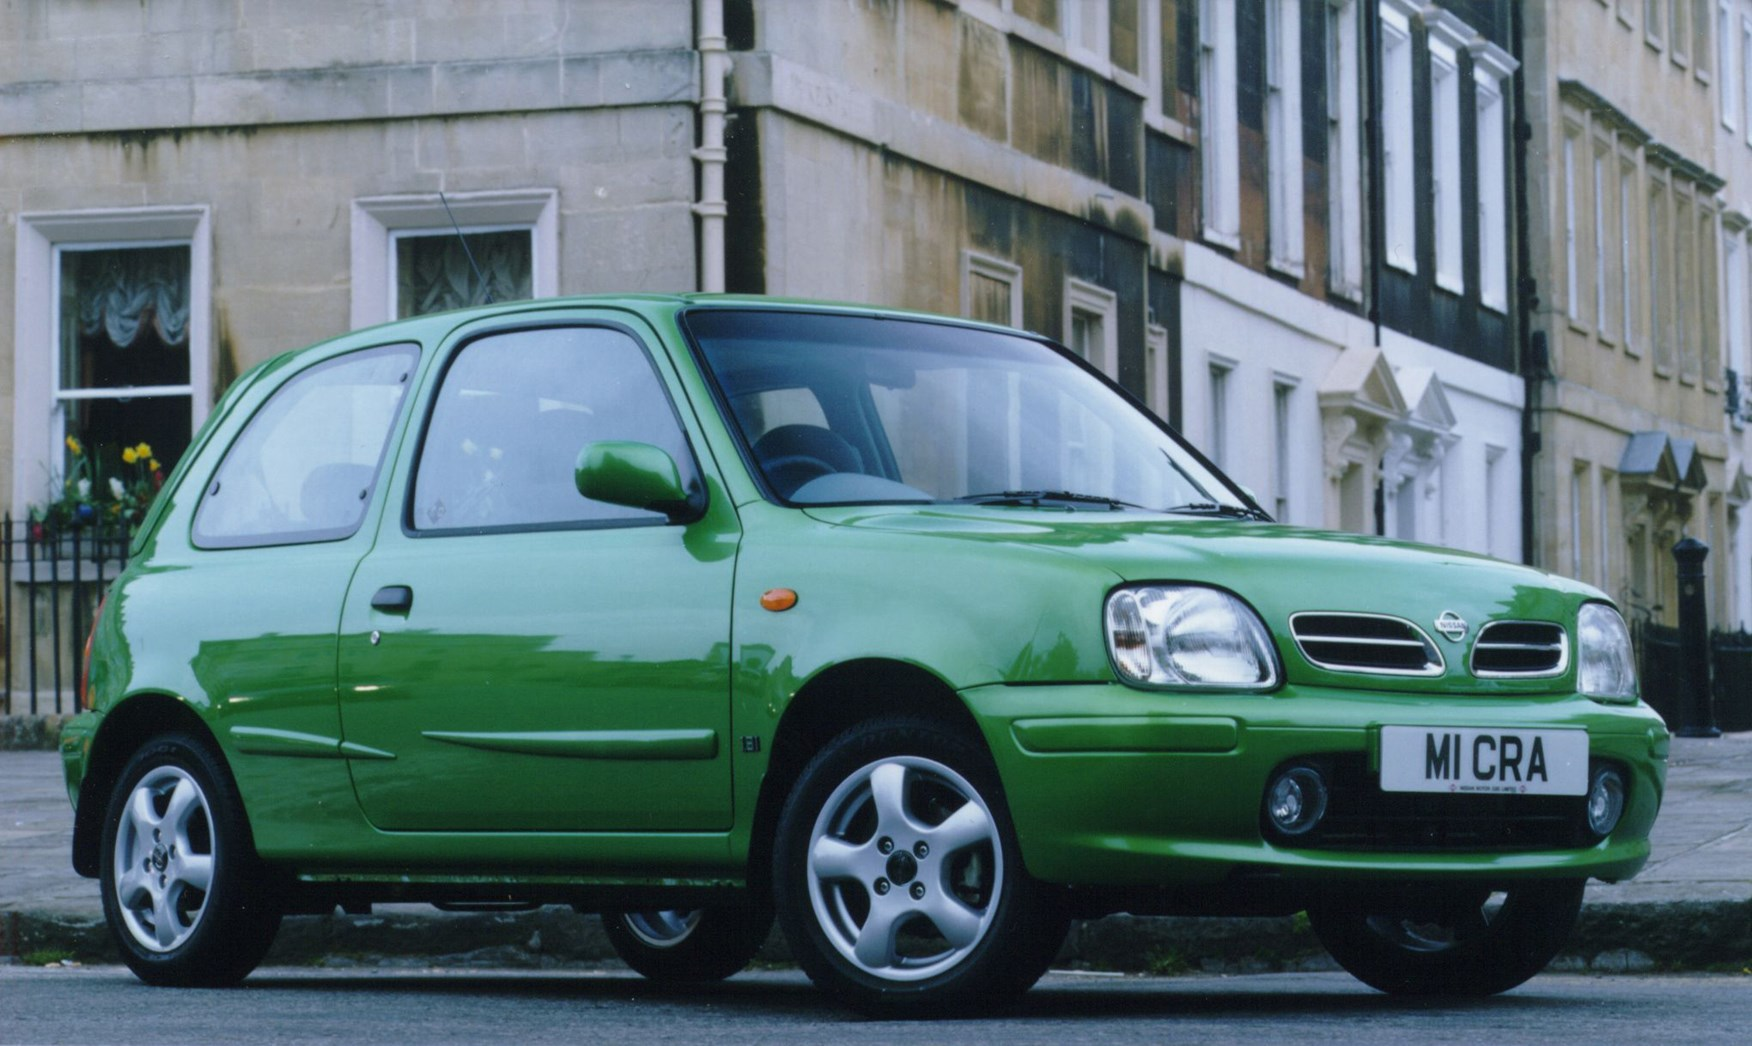 Nissan Micra Hatchback (1993 - 2002) Features, Equipment and ...